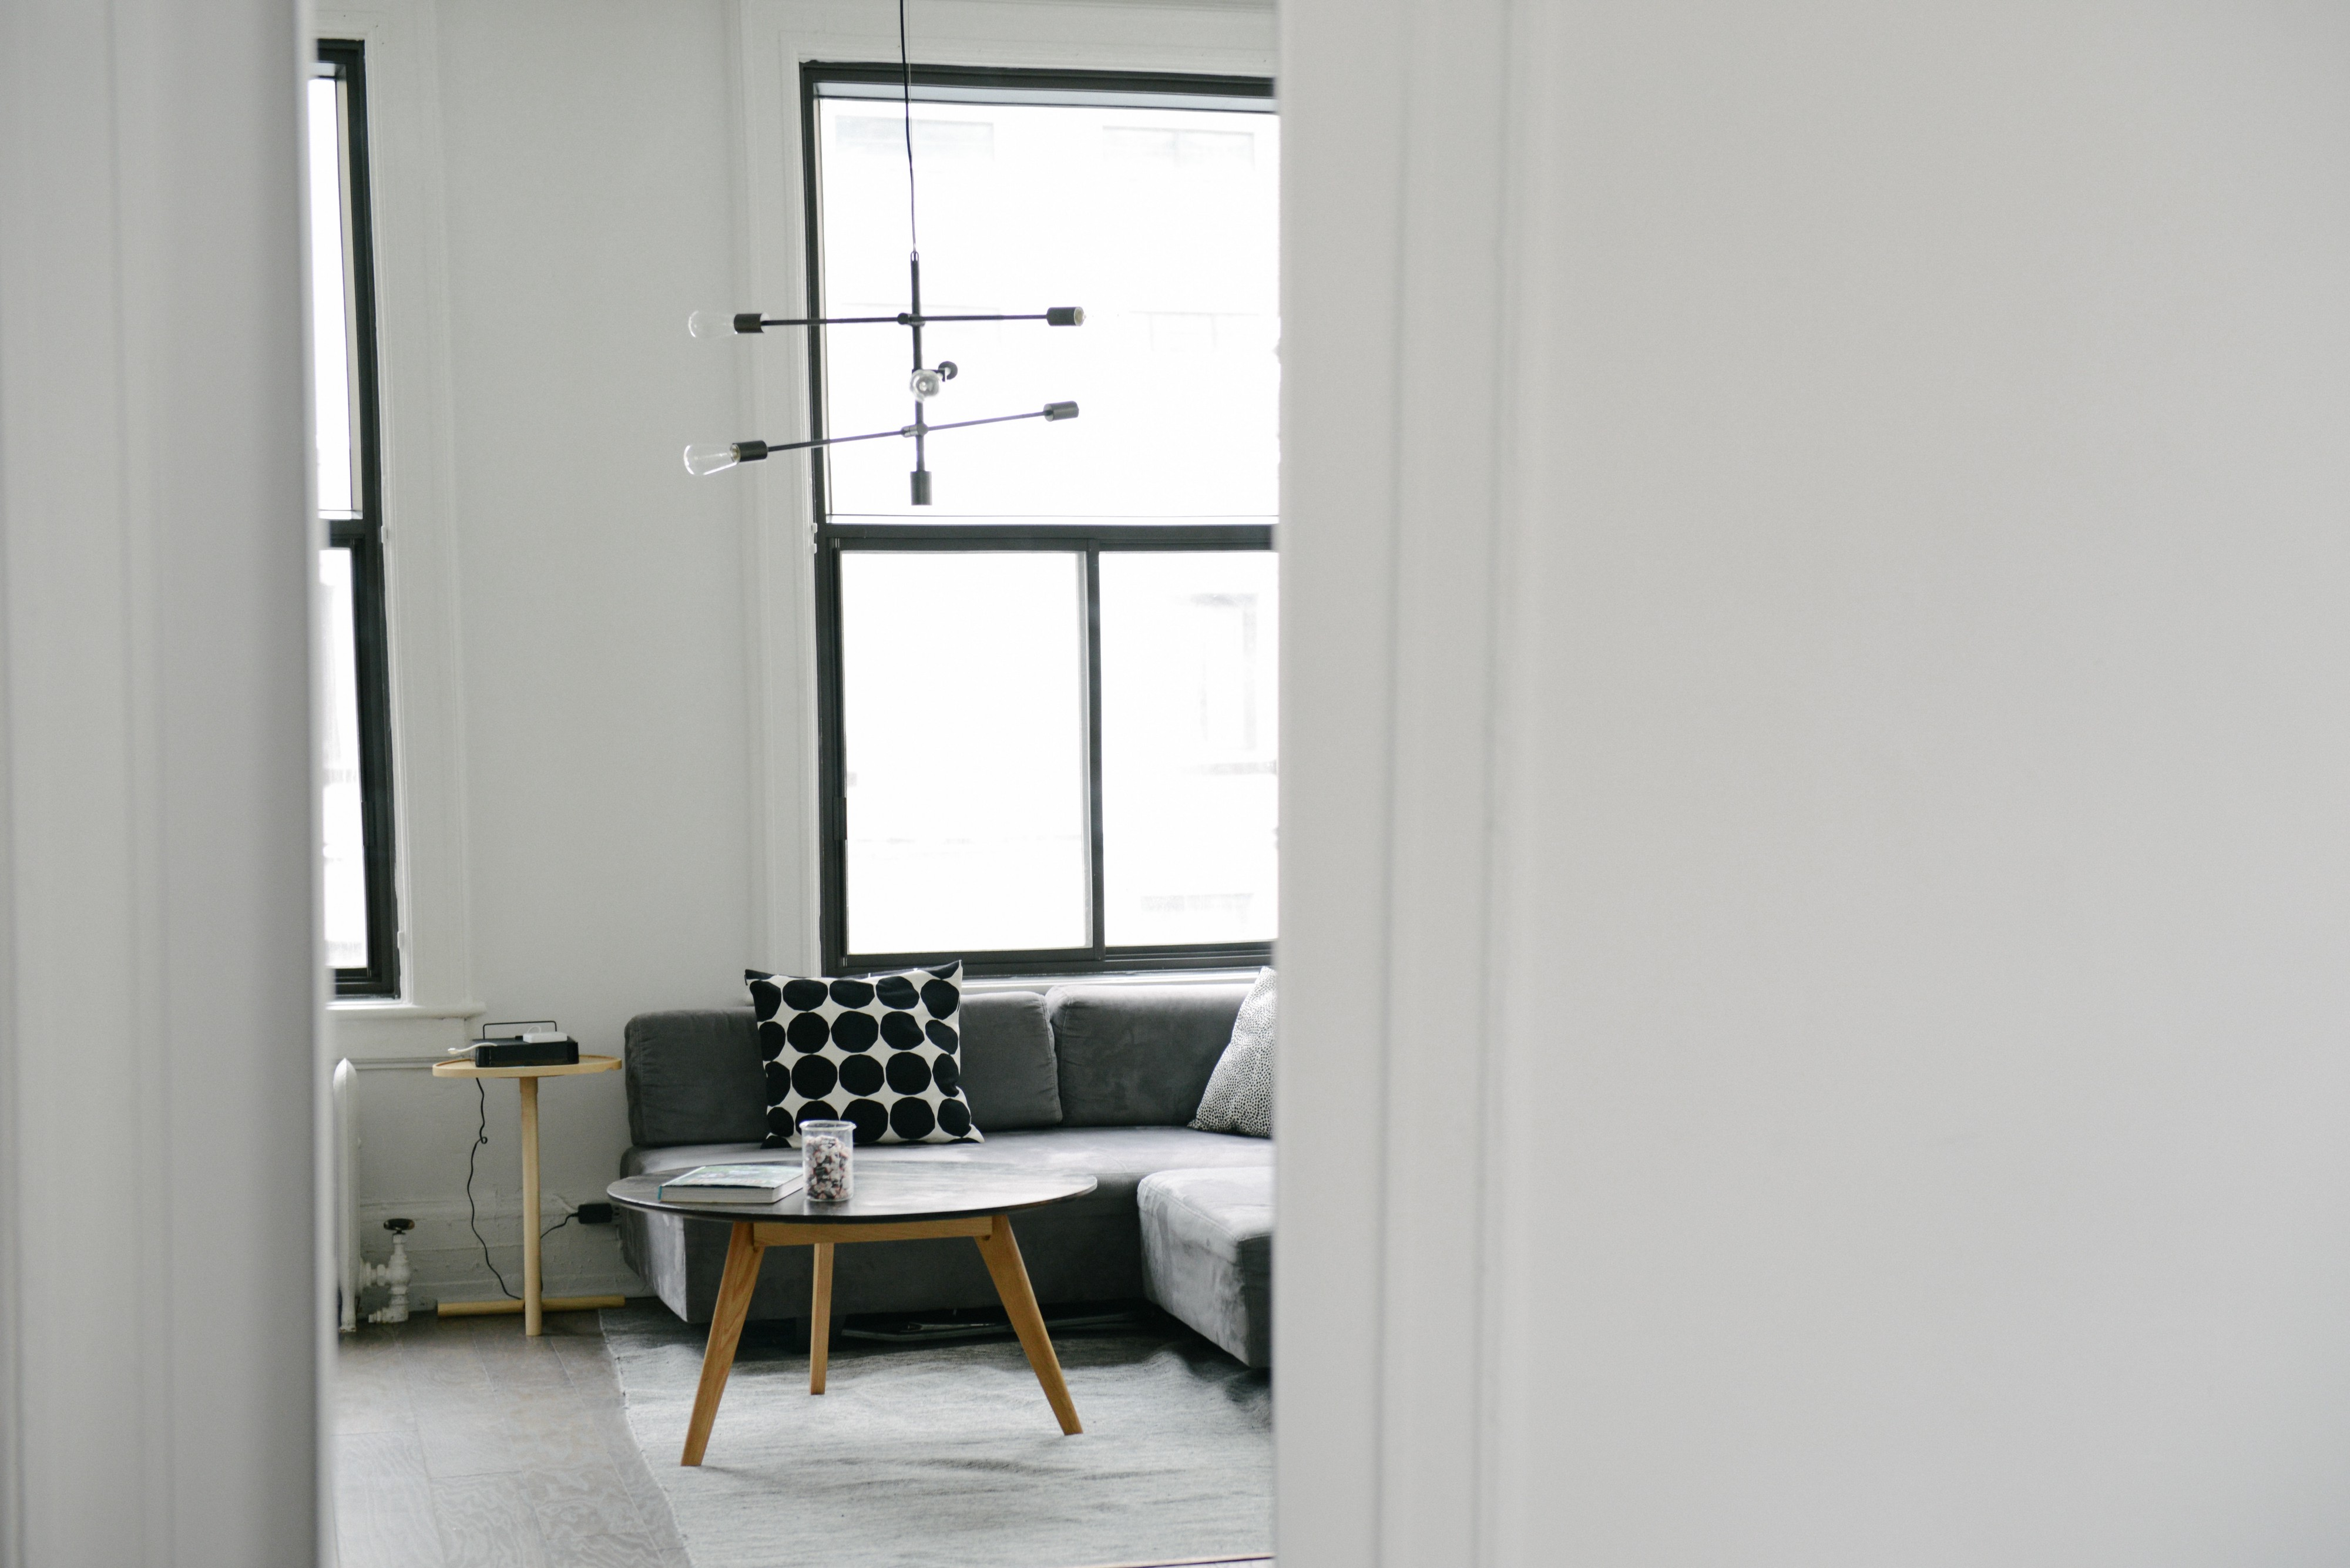 7 Tips and Tricks That You Need to Know as an Airbnb Host